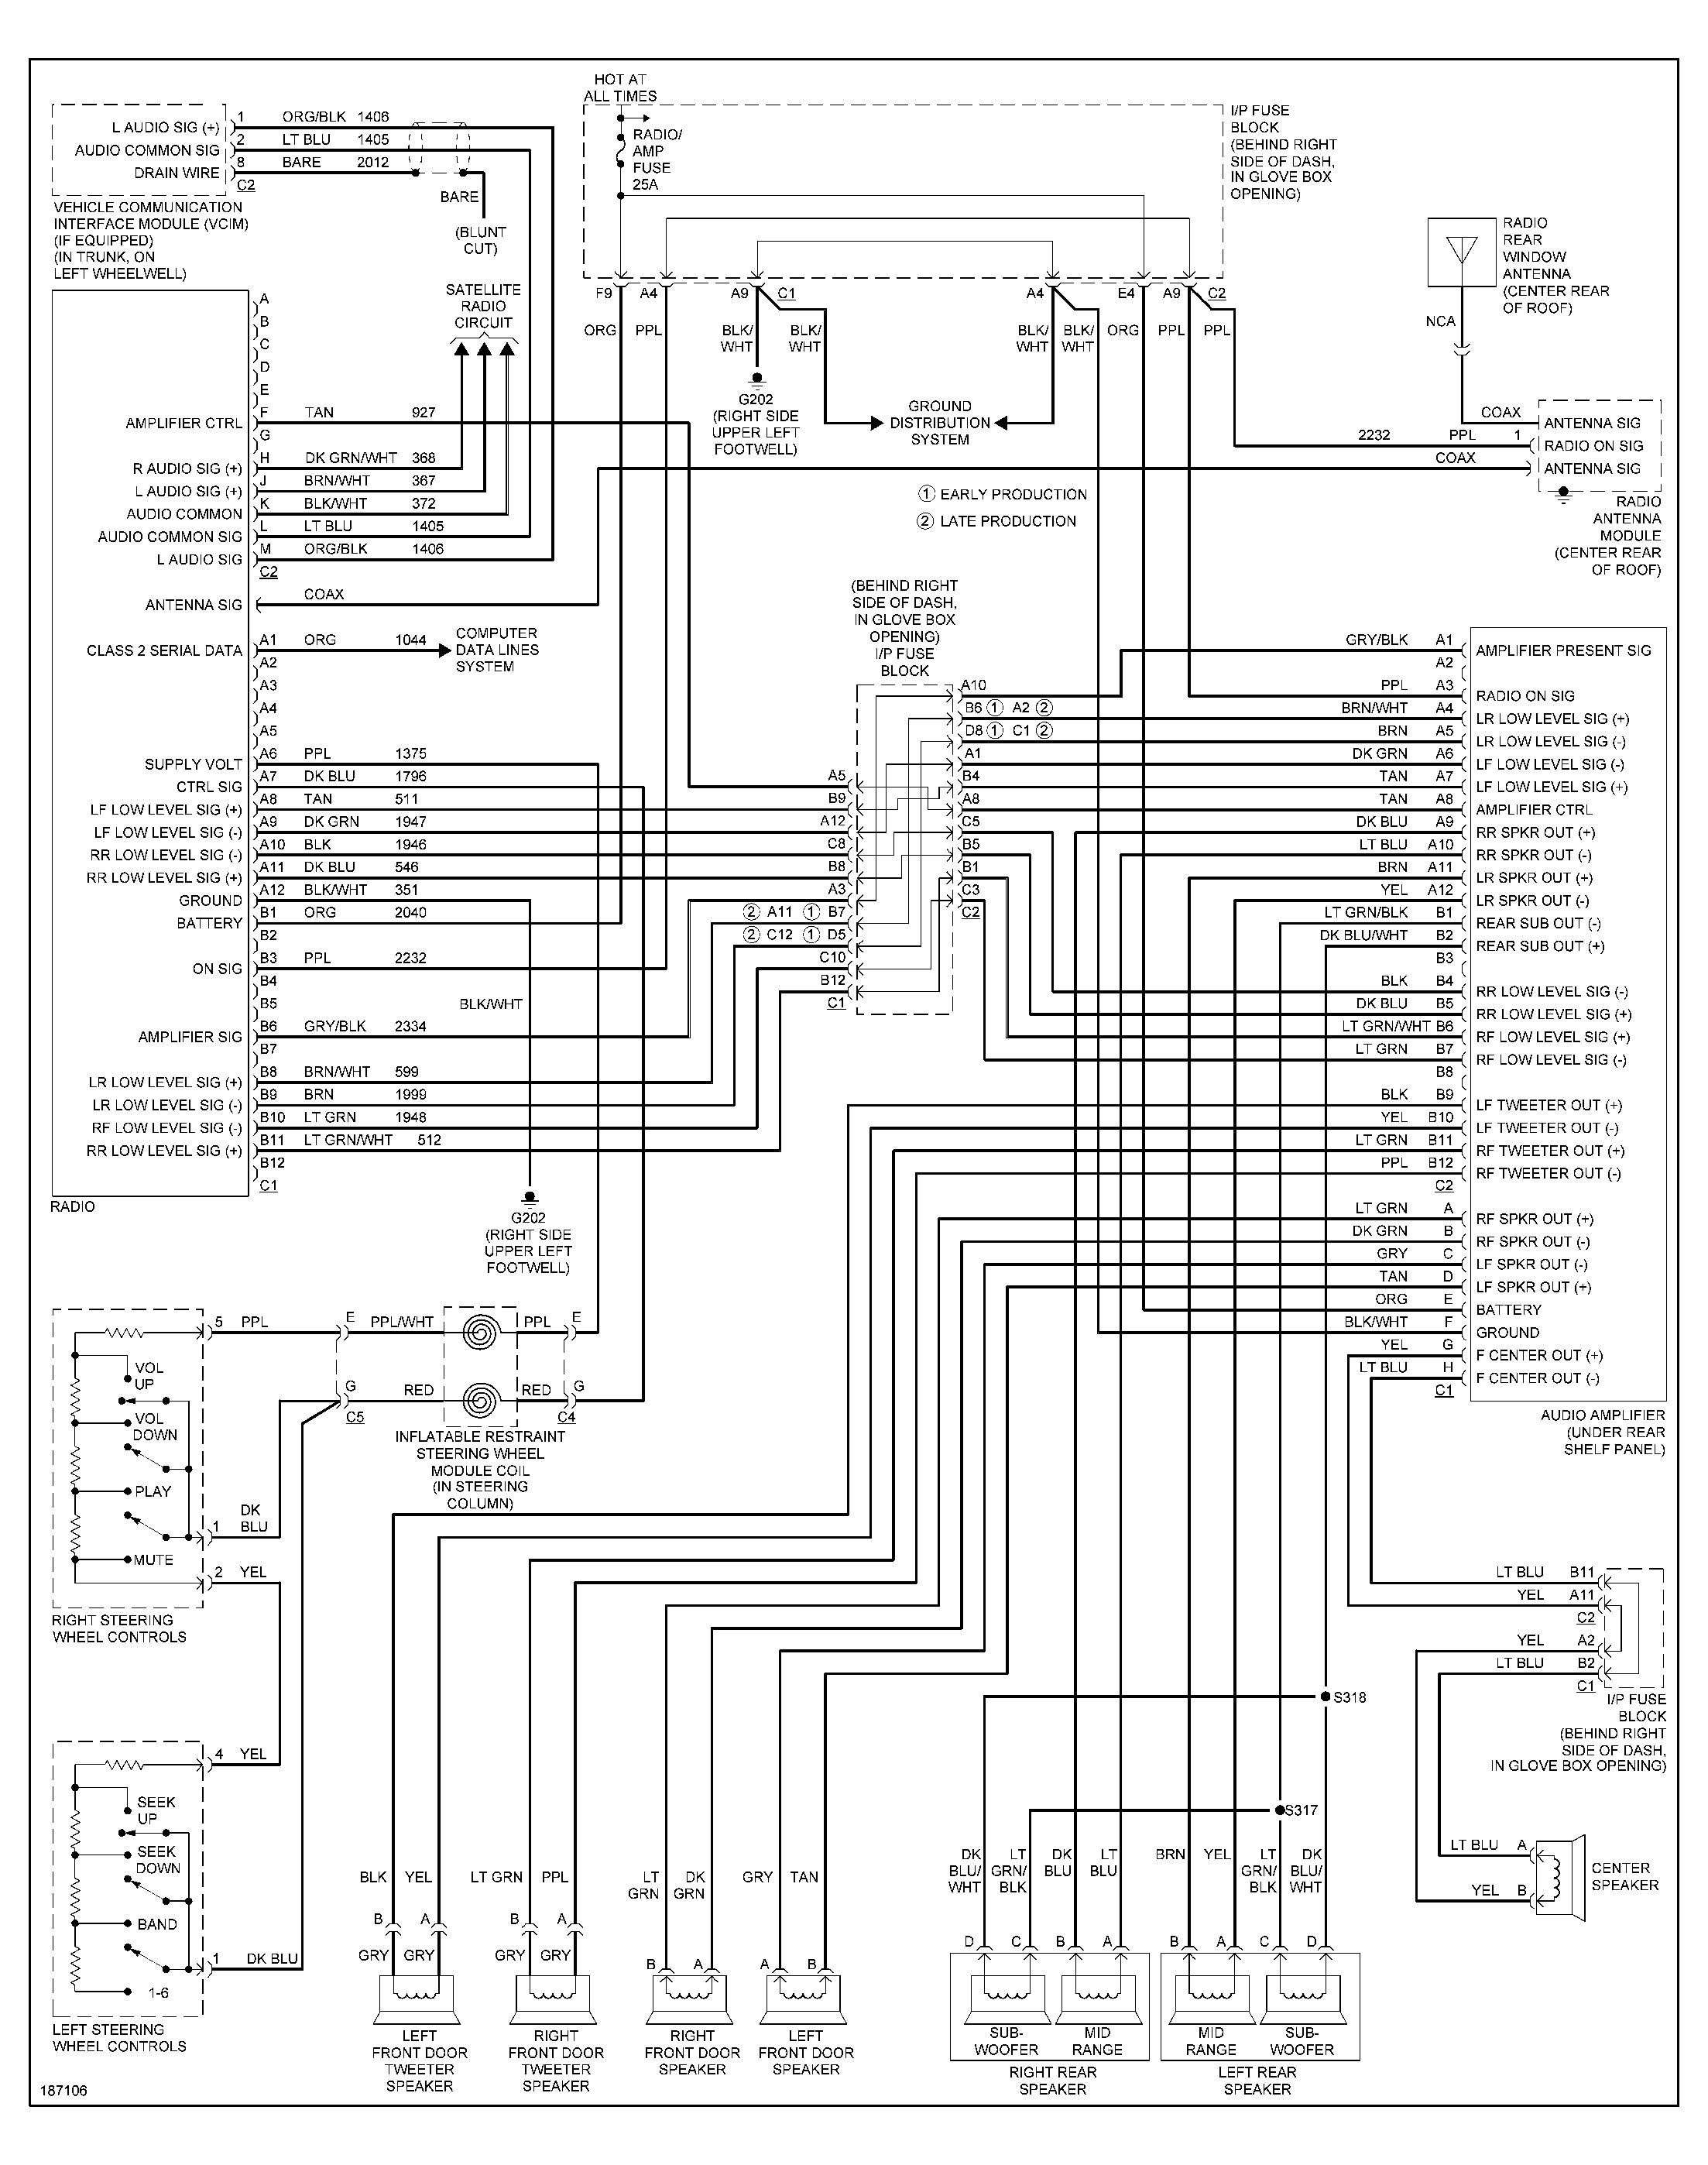 2007 pontiac grand prix headlight wiring diagram - wiring diagram fix  sick-mixture - sick-mixture.romafitnessfestival.it  romafitnessfestival.it